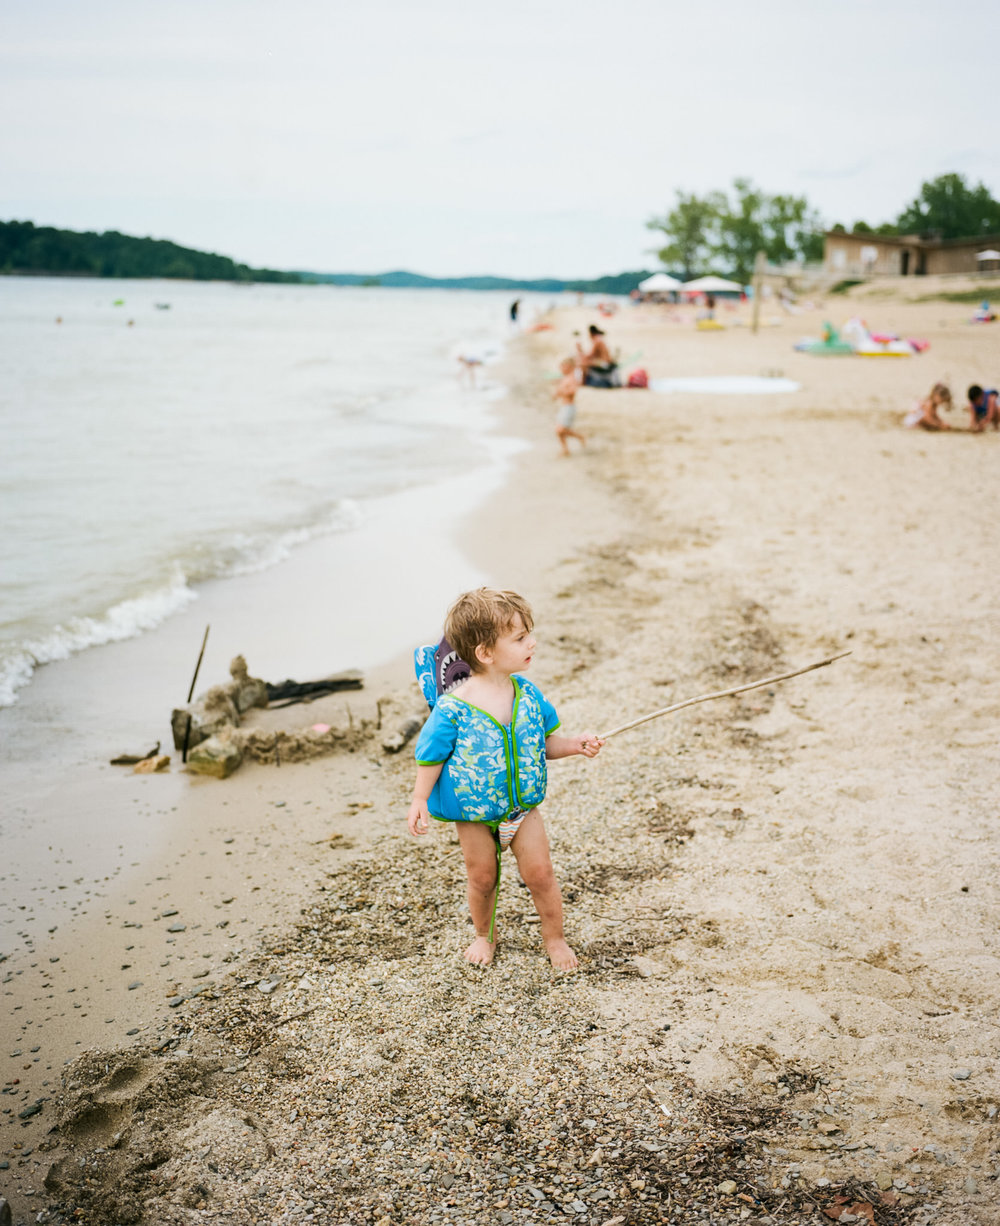 Image of a boy on the beach of Barren River Lake taken with the Mamiya 7 and 80mm f/4 lens